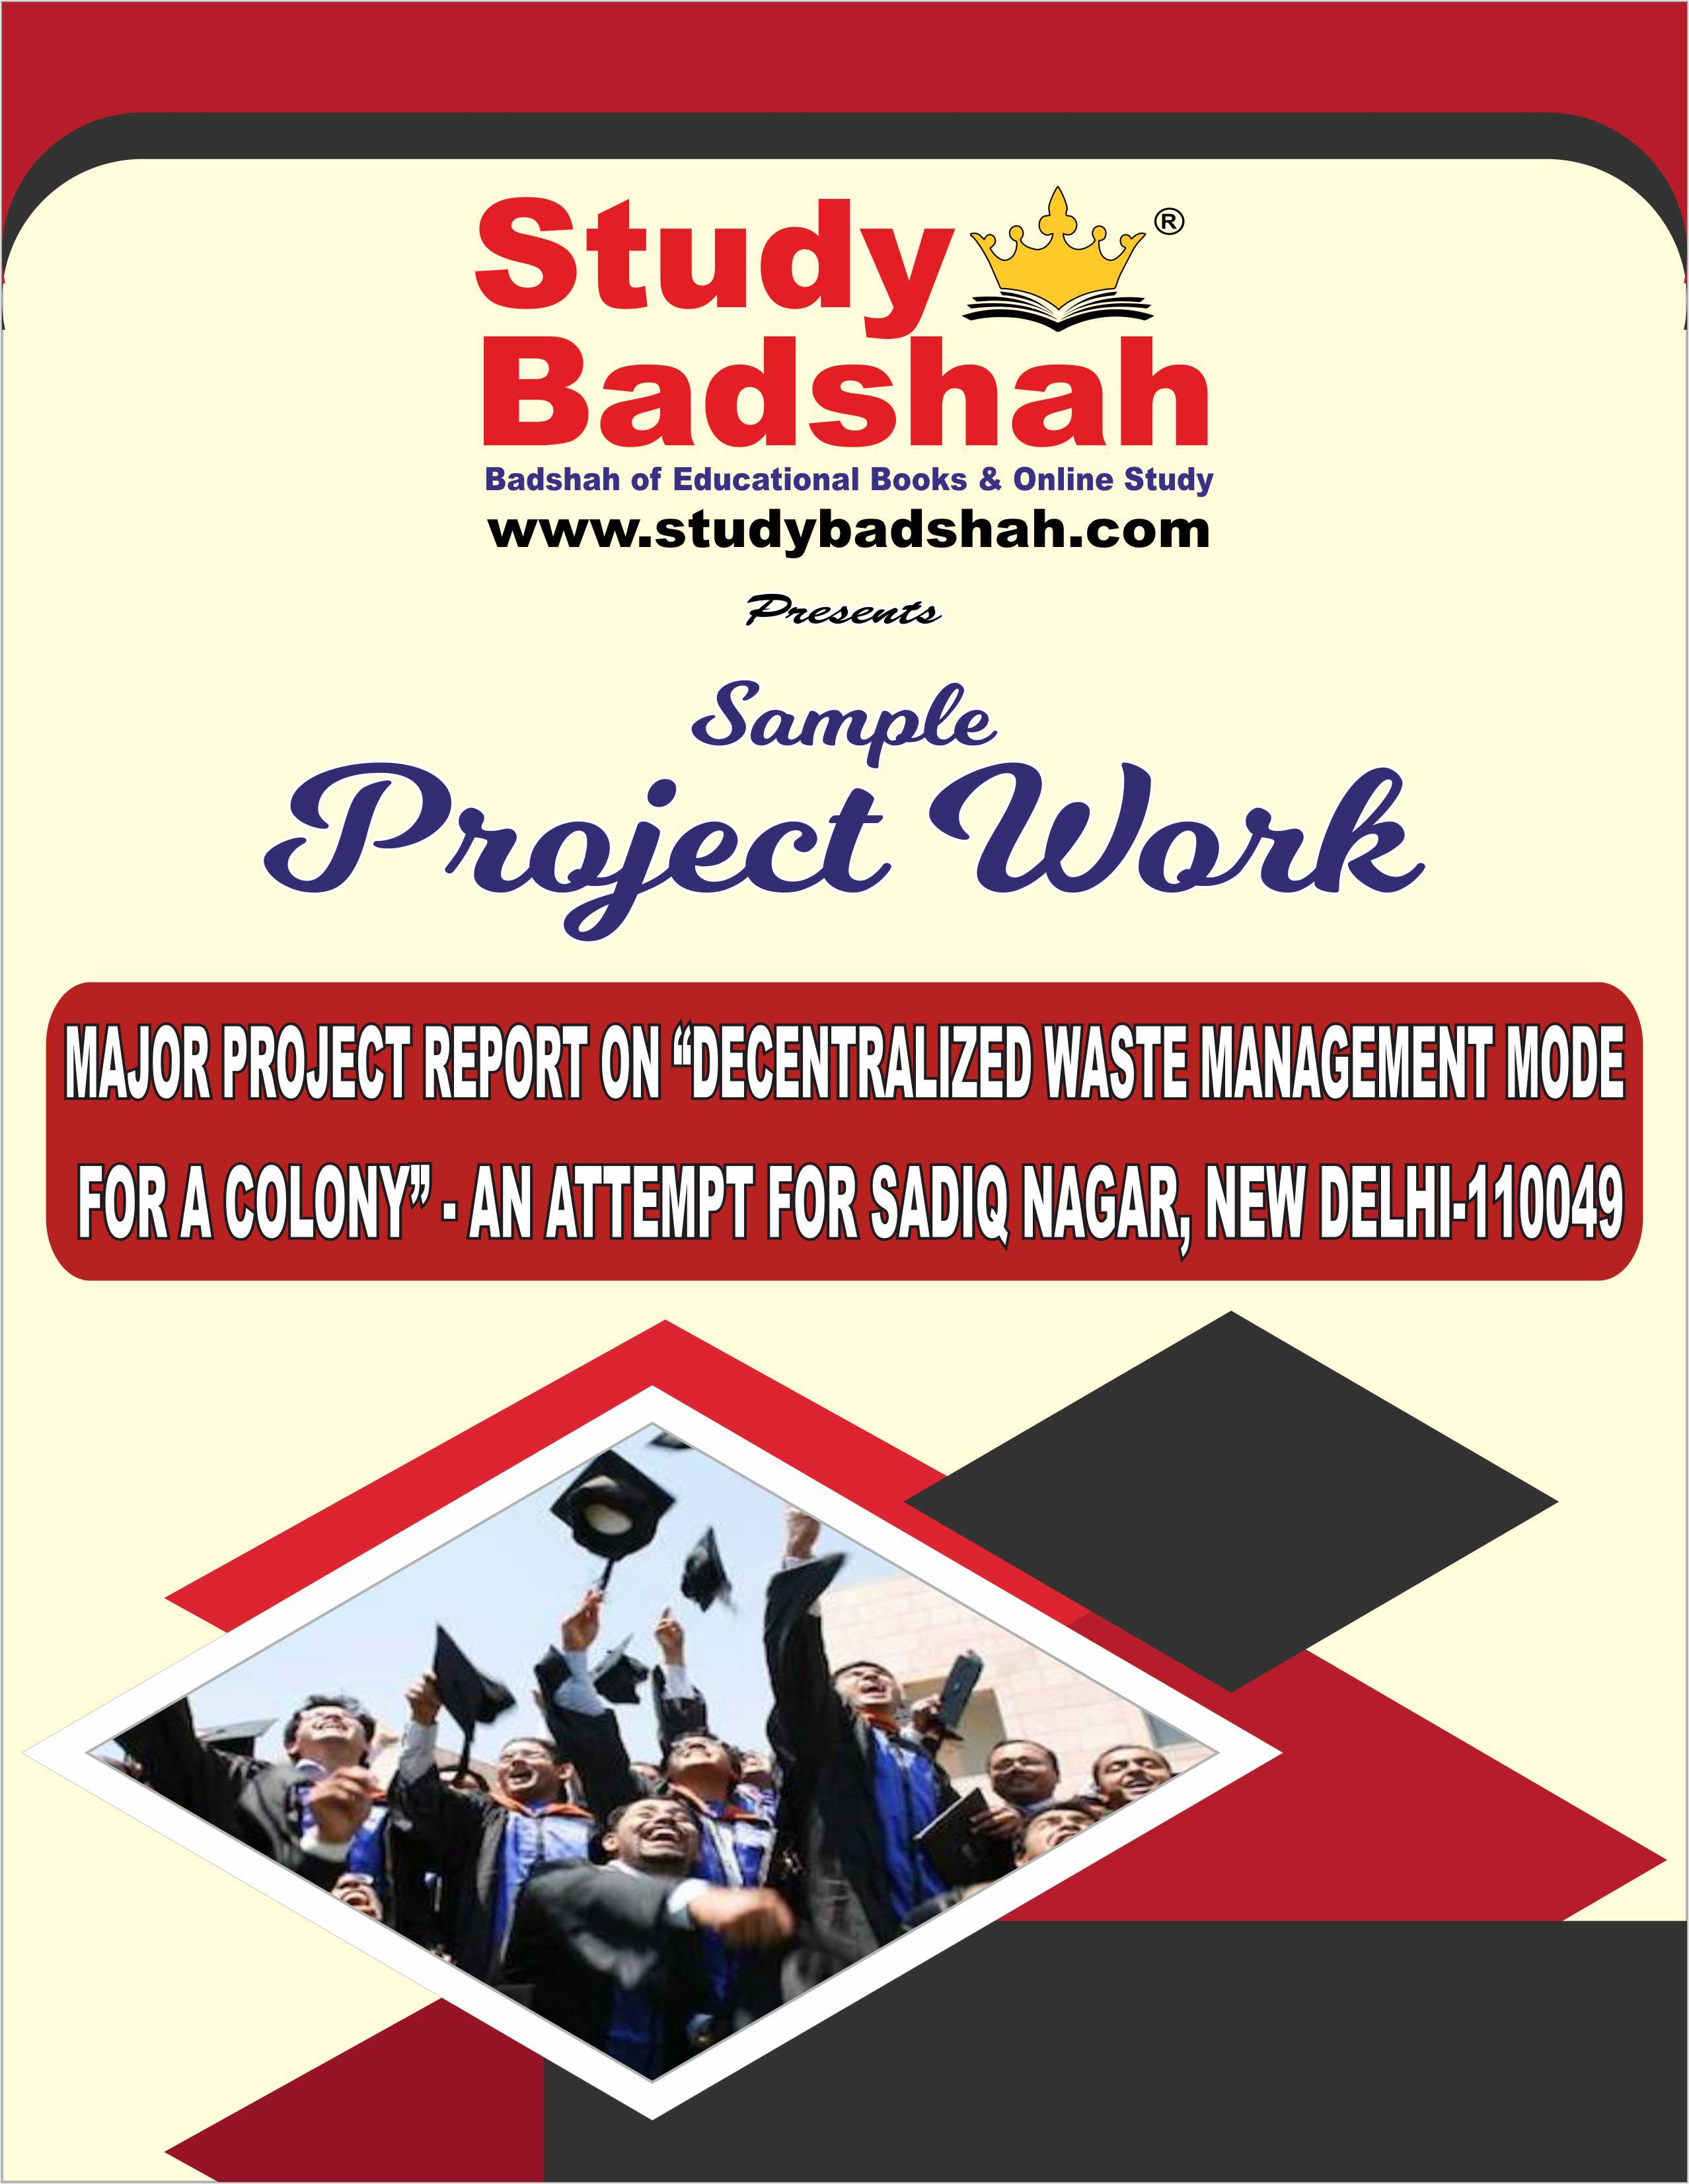 MAJOR PROJECT REPORT ON DECENTRALIZED WASTE MANAGEMENT MODEL FOR A COLONY AN ATTEMPT FOR SADIQ NAGAR, NEW DELHI-110049